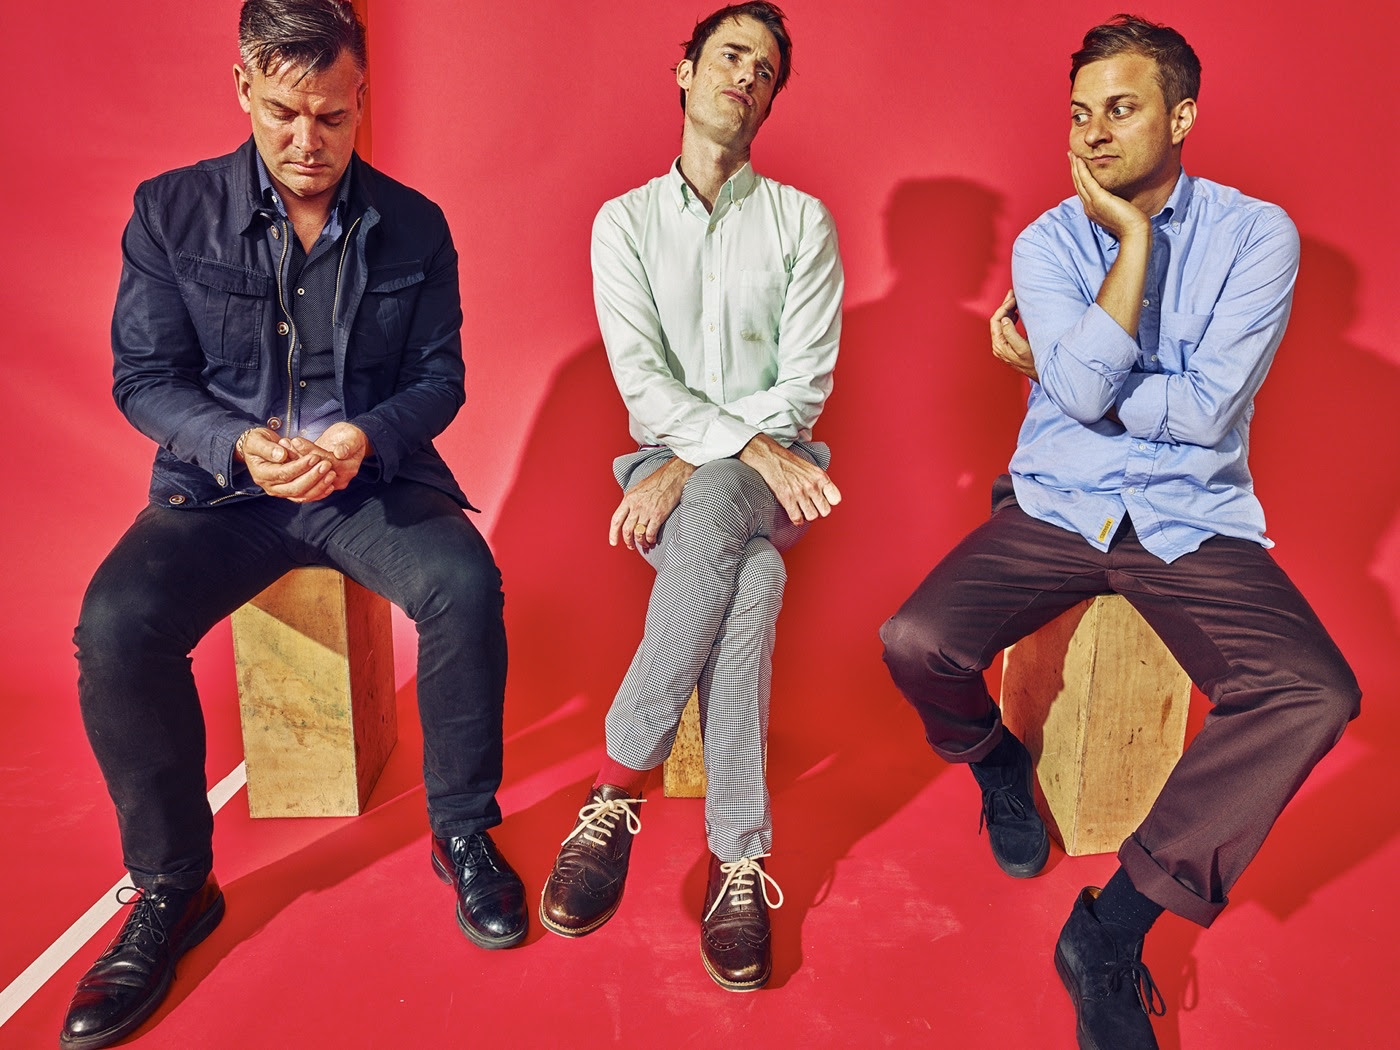 """BATTLES Share New Track Stream """"FF BADA"""" from forthcoming release 'La Di Da Di' Out Sept 18 in the US via Warp, BATTLES' Tour Starts Sept 10"""